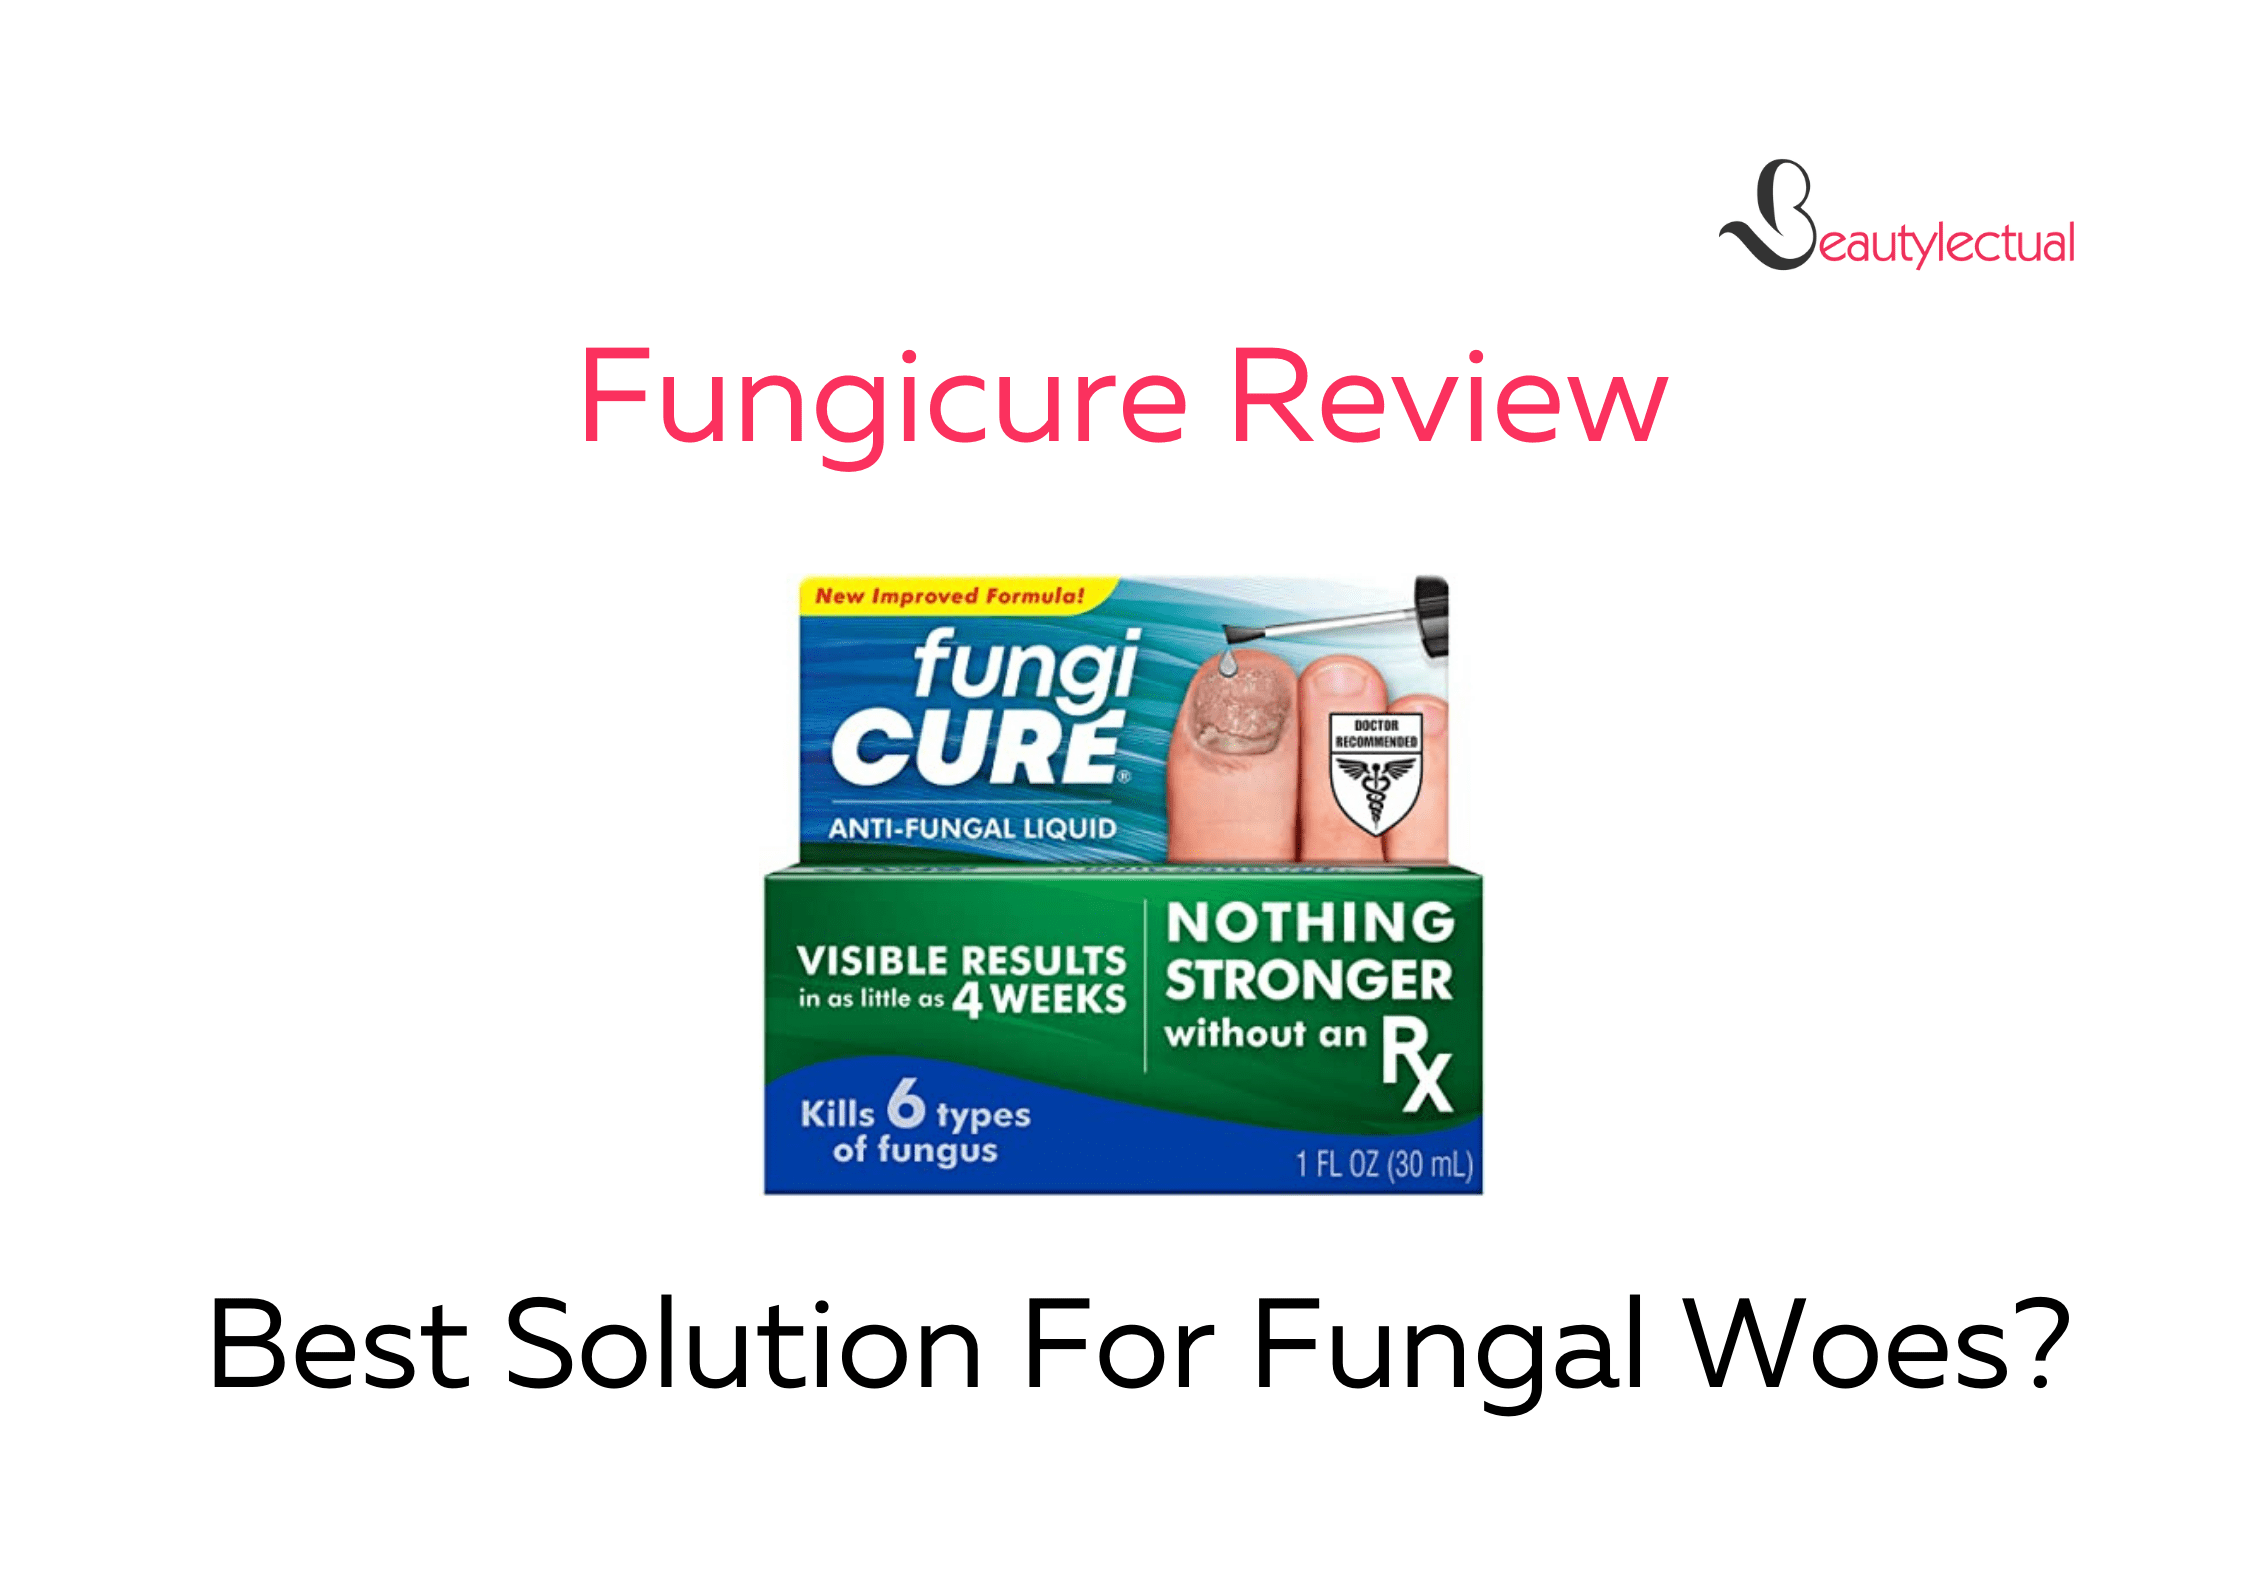 Fungicure Review